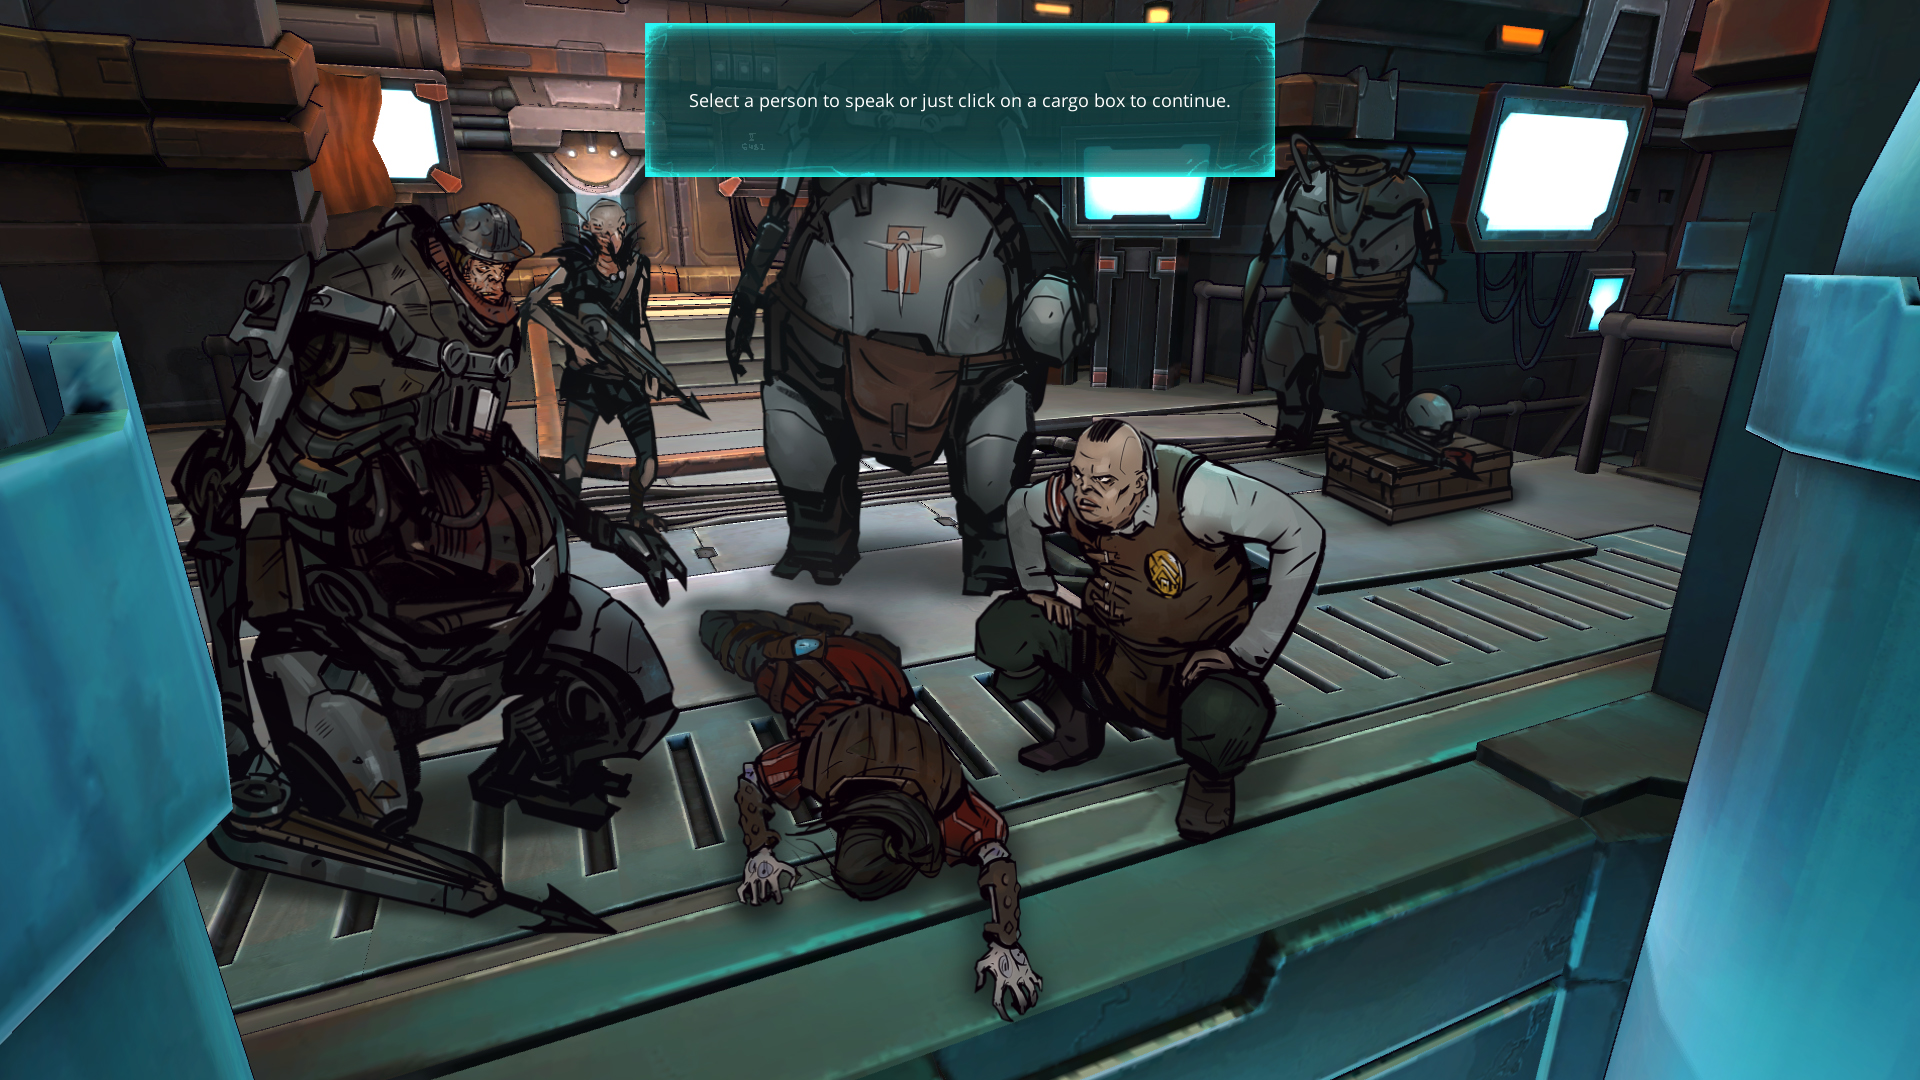 Leviathan: the Cargo — Ongoing series screenshot